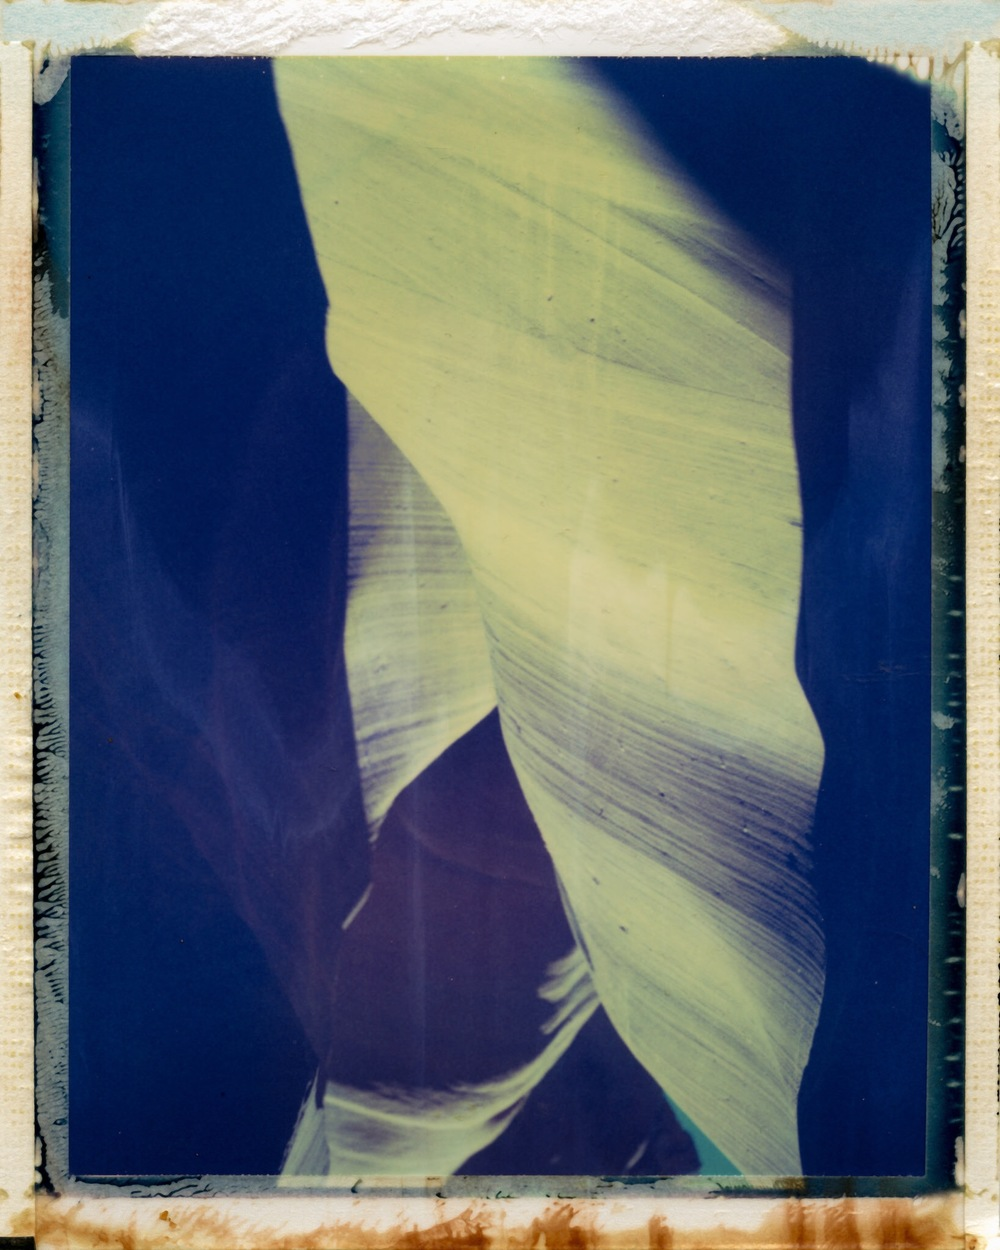 Antelope Canyon | Polaroid Land Camera 180 | Polaroid IDUV FIlm | Peter McCabe